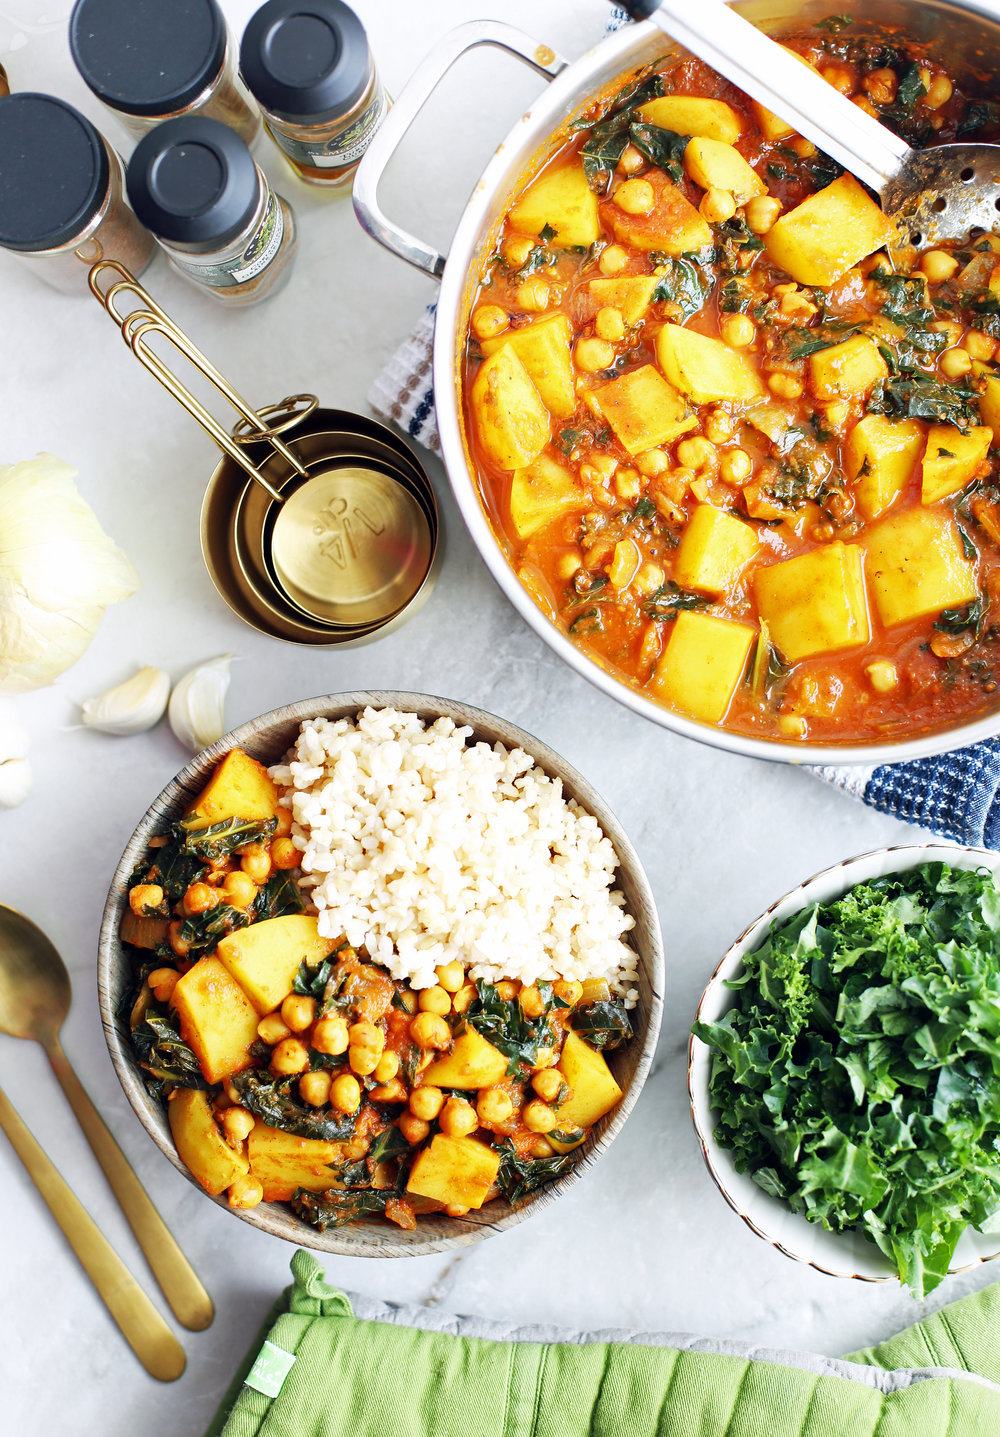 An overhead view of a bowl of chickpea kale and potato curry, a pot of curry, and a bowl of raw kale.